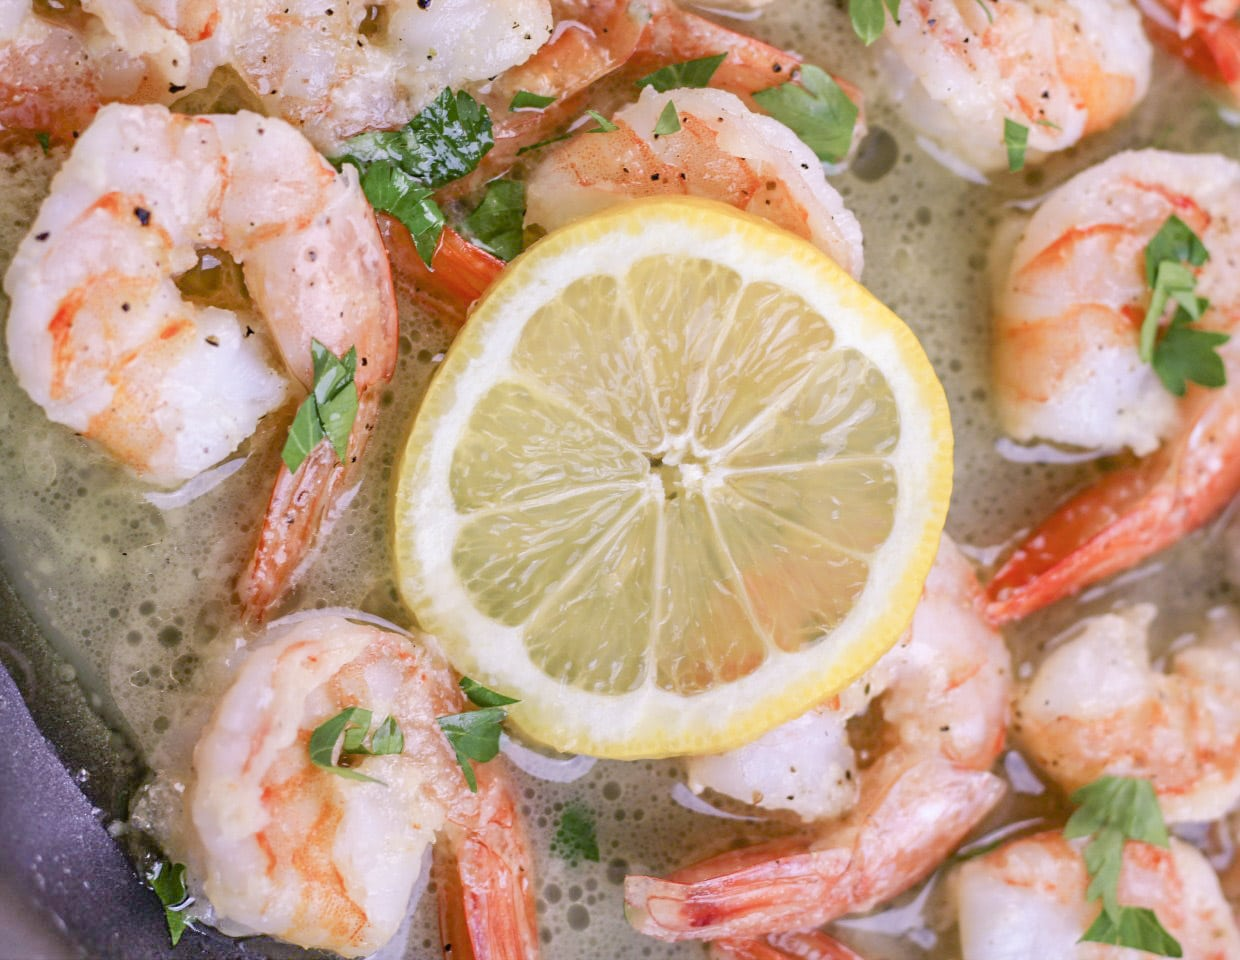 Garlic Butter Shrimp cooked in a skillet